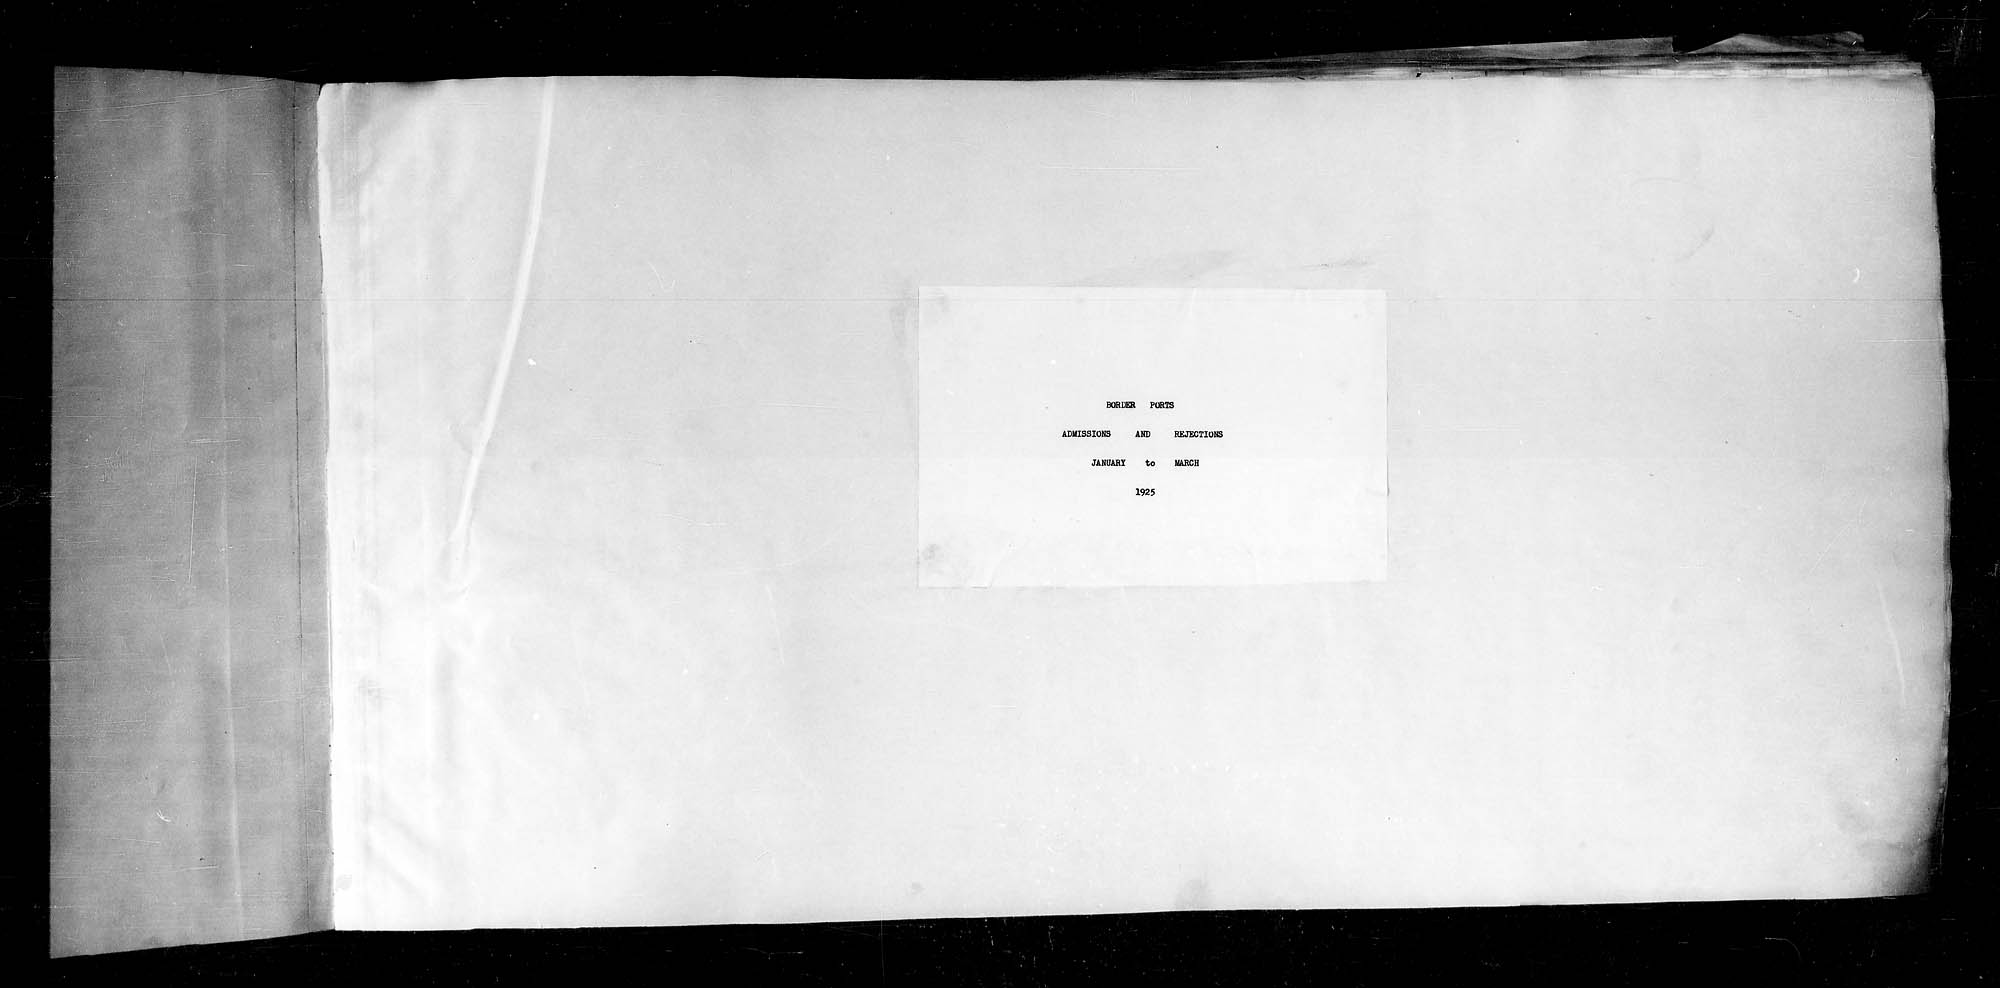 Title: Border Entry, 1925-1935 - Mikan Number: 134855 - Microform: t-15346